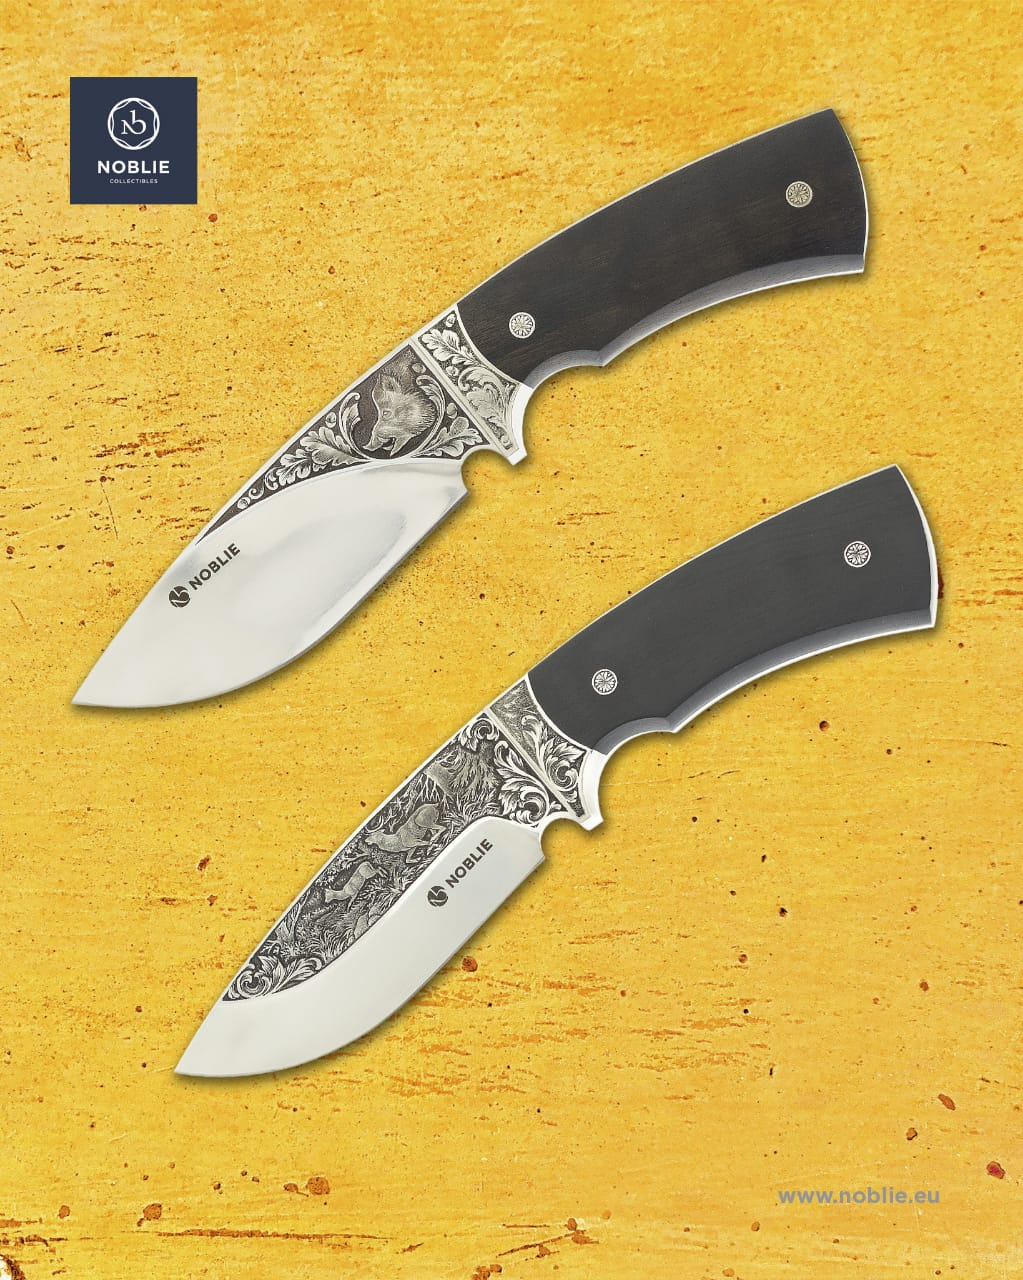 Handmade Knives VS Factory-made: Which are better?